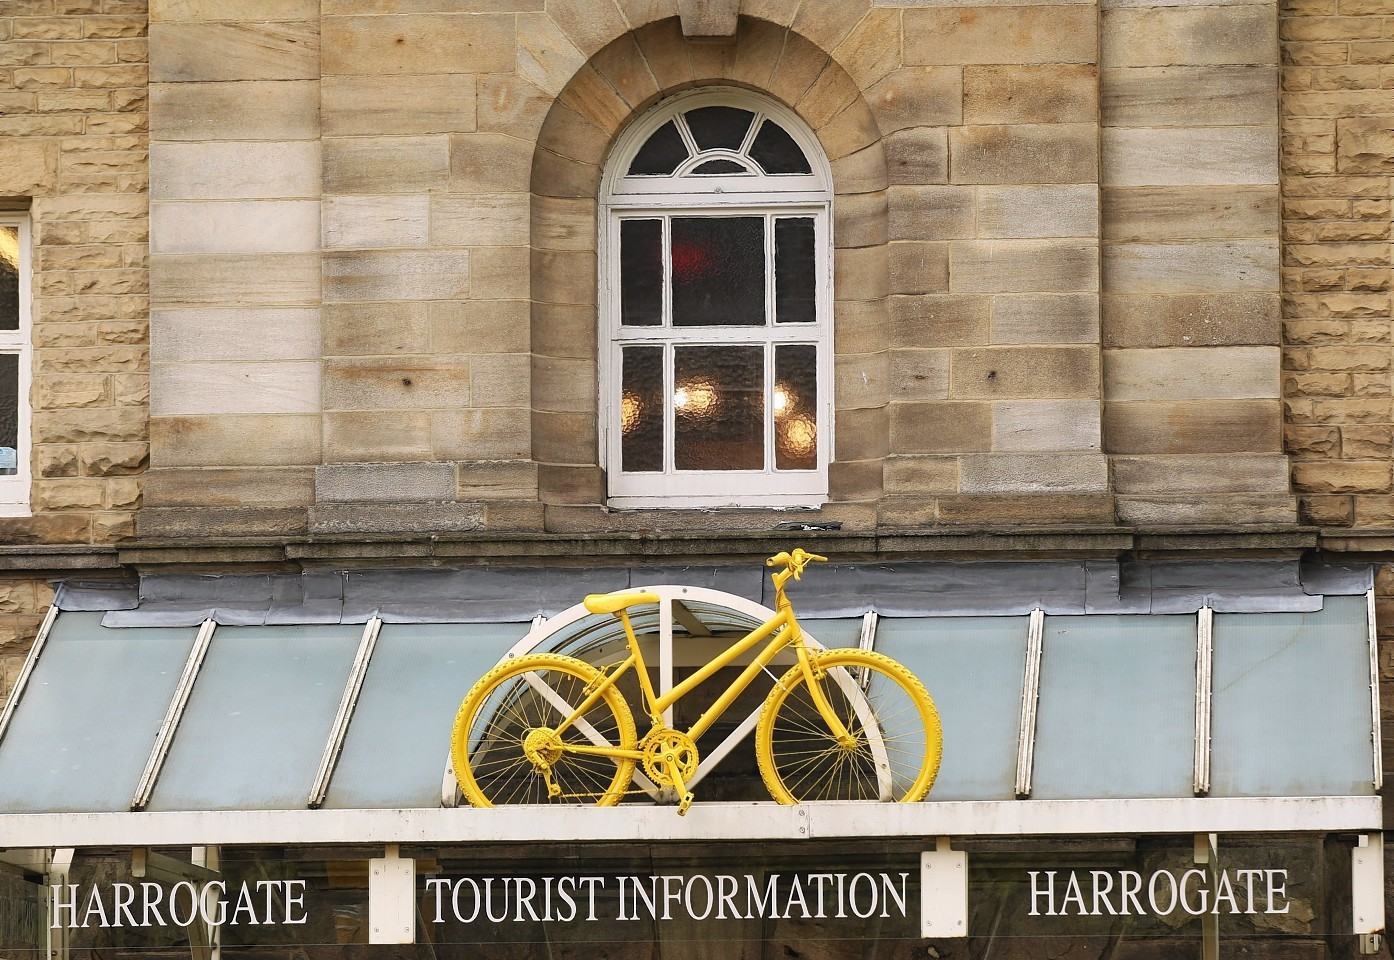 Yellow bikes on display around Harrogate ahead of the Tour de France which passes through in July, as Harrogate has been crowned as the happiest place to live in Britain in a report which asked people how contented they are with their home and local community